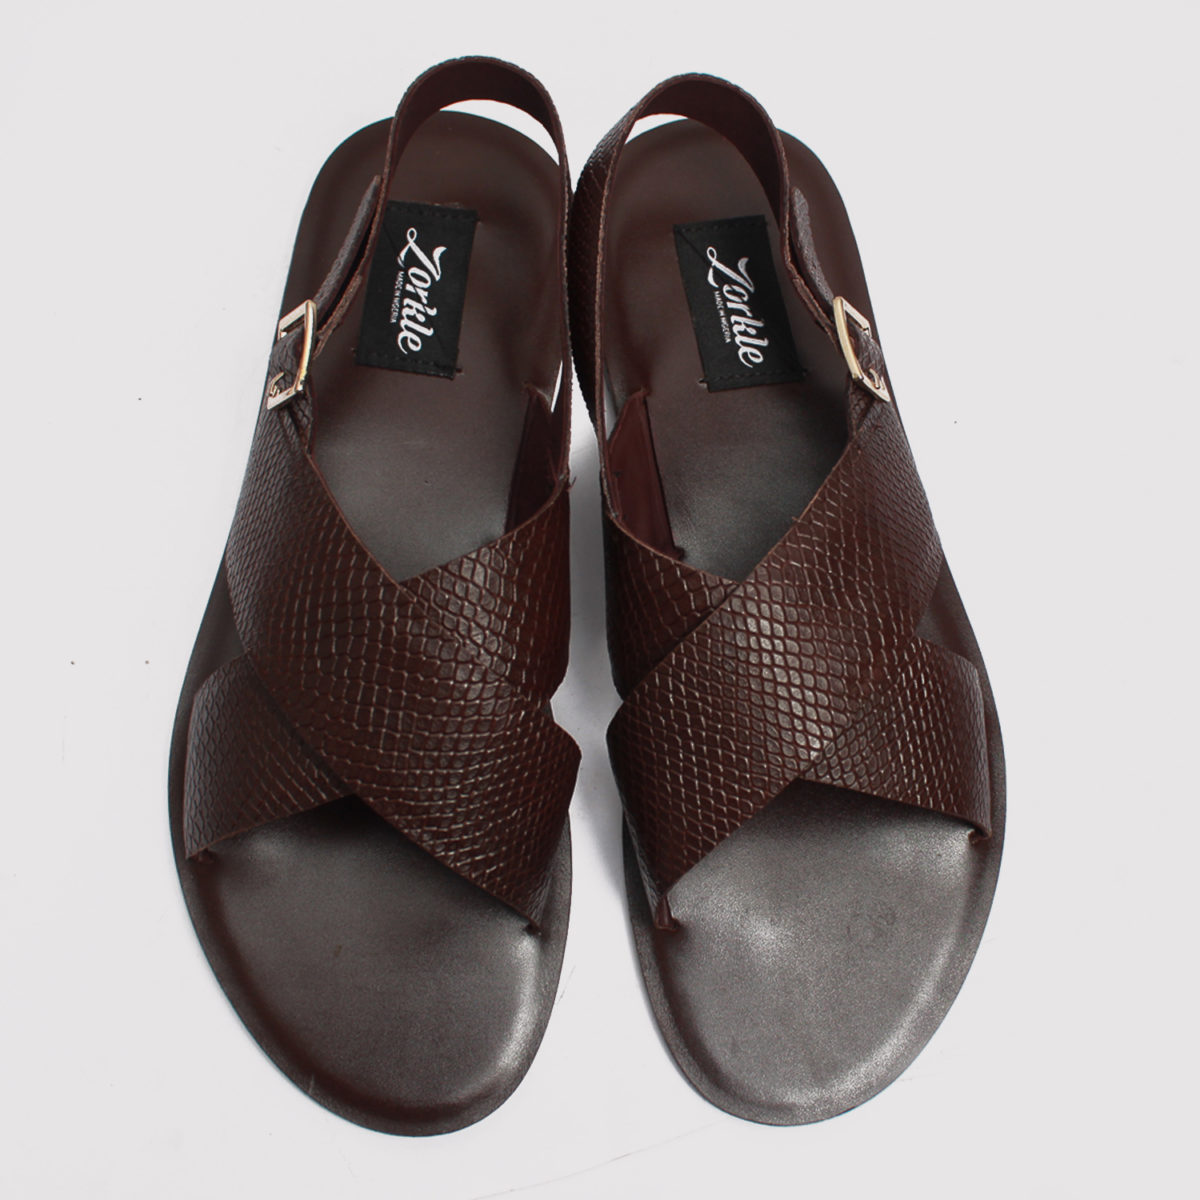 Hafred sandals brown leather zorkles shoes in lagos nigeria